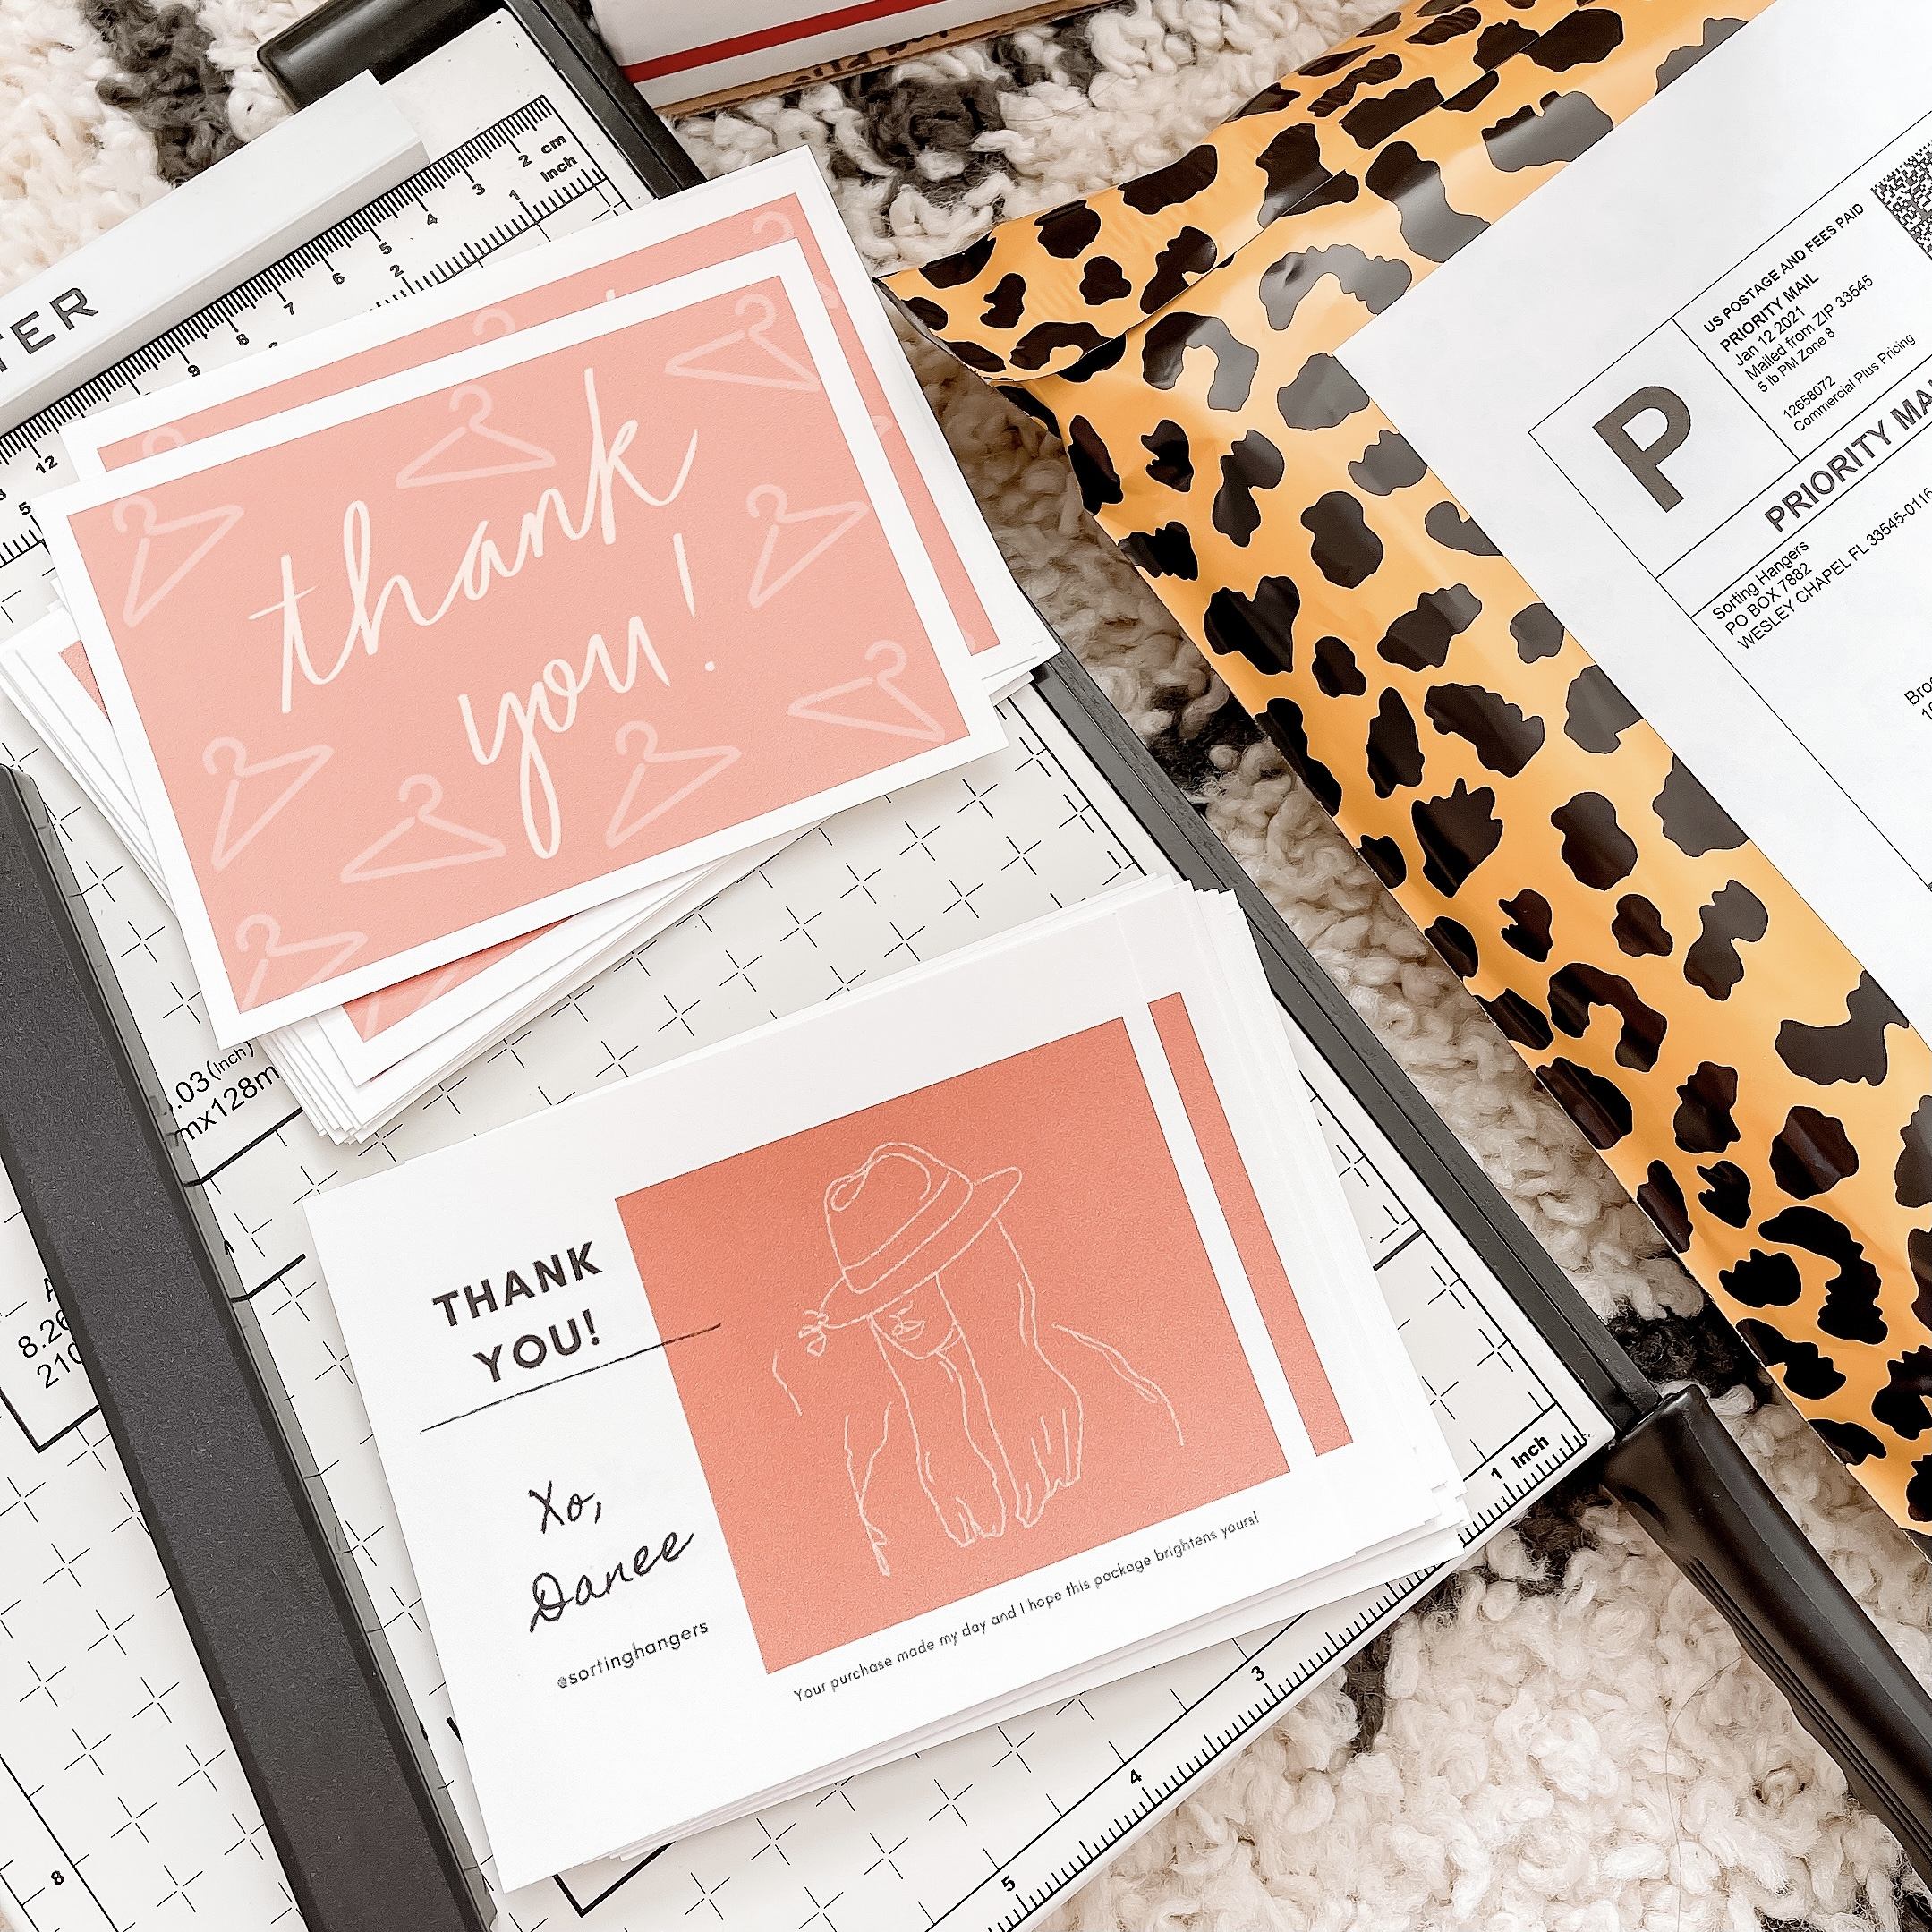 Thank you cards + mailers